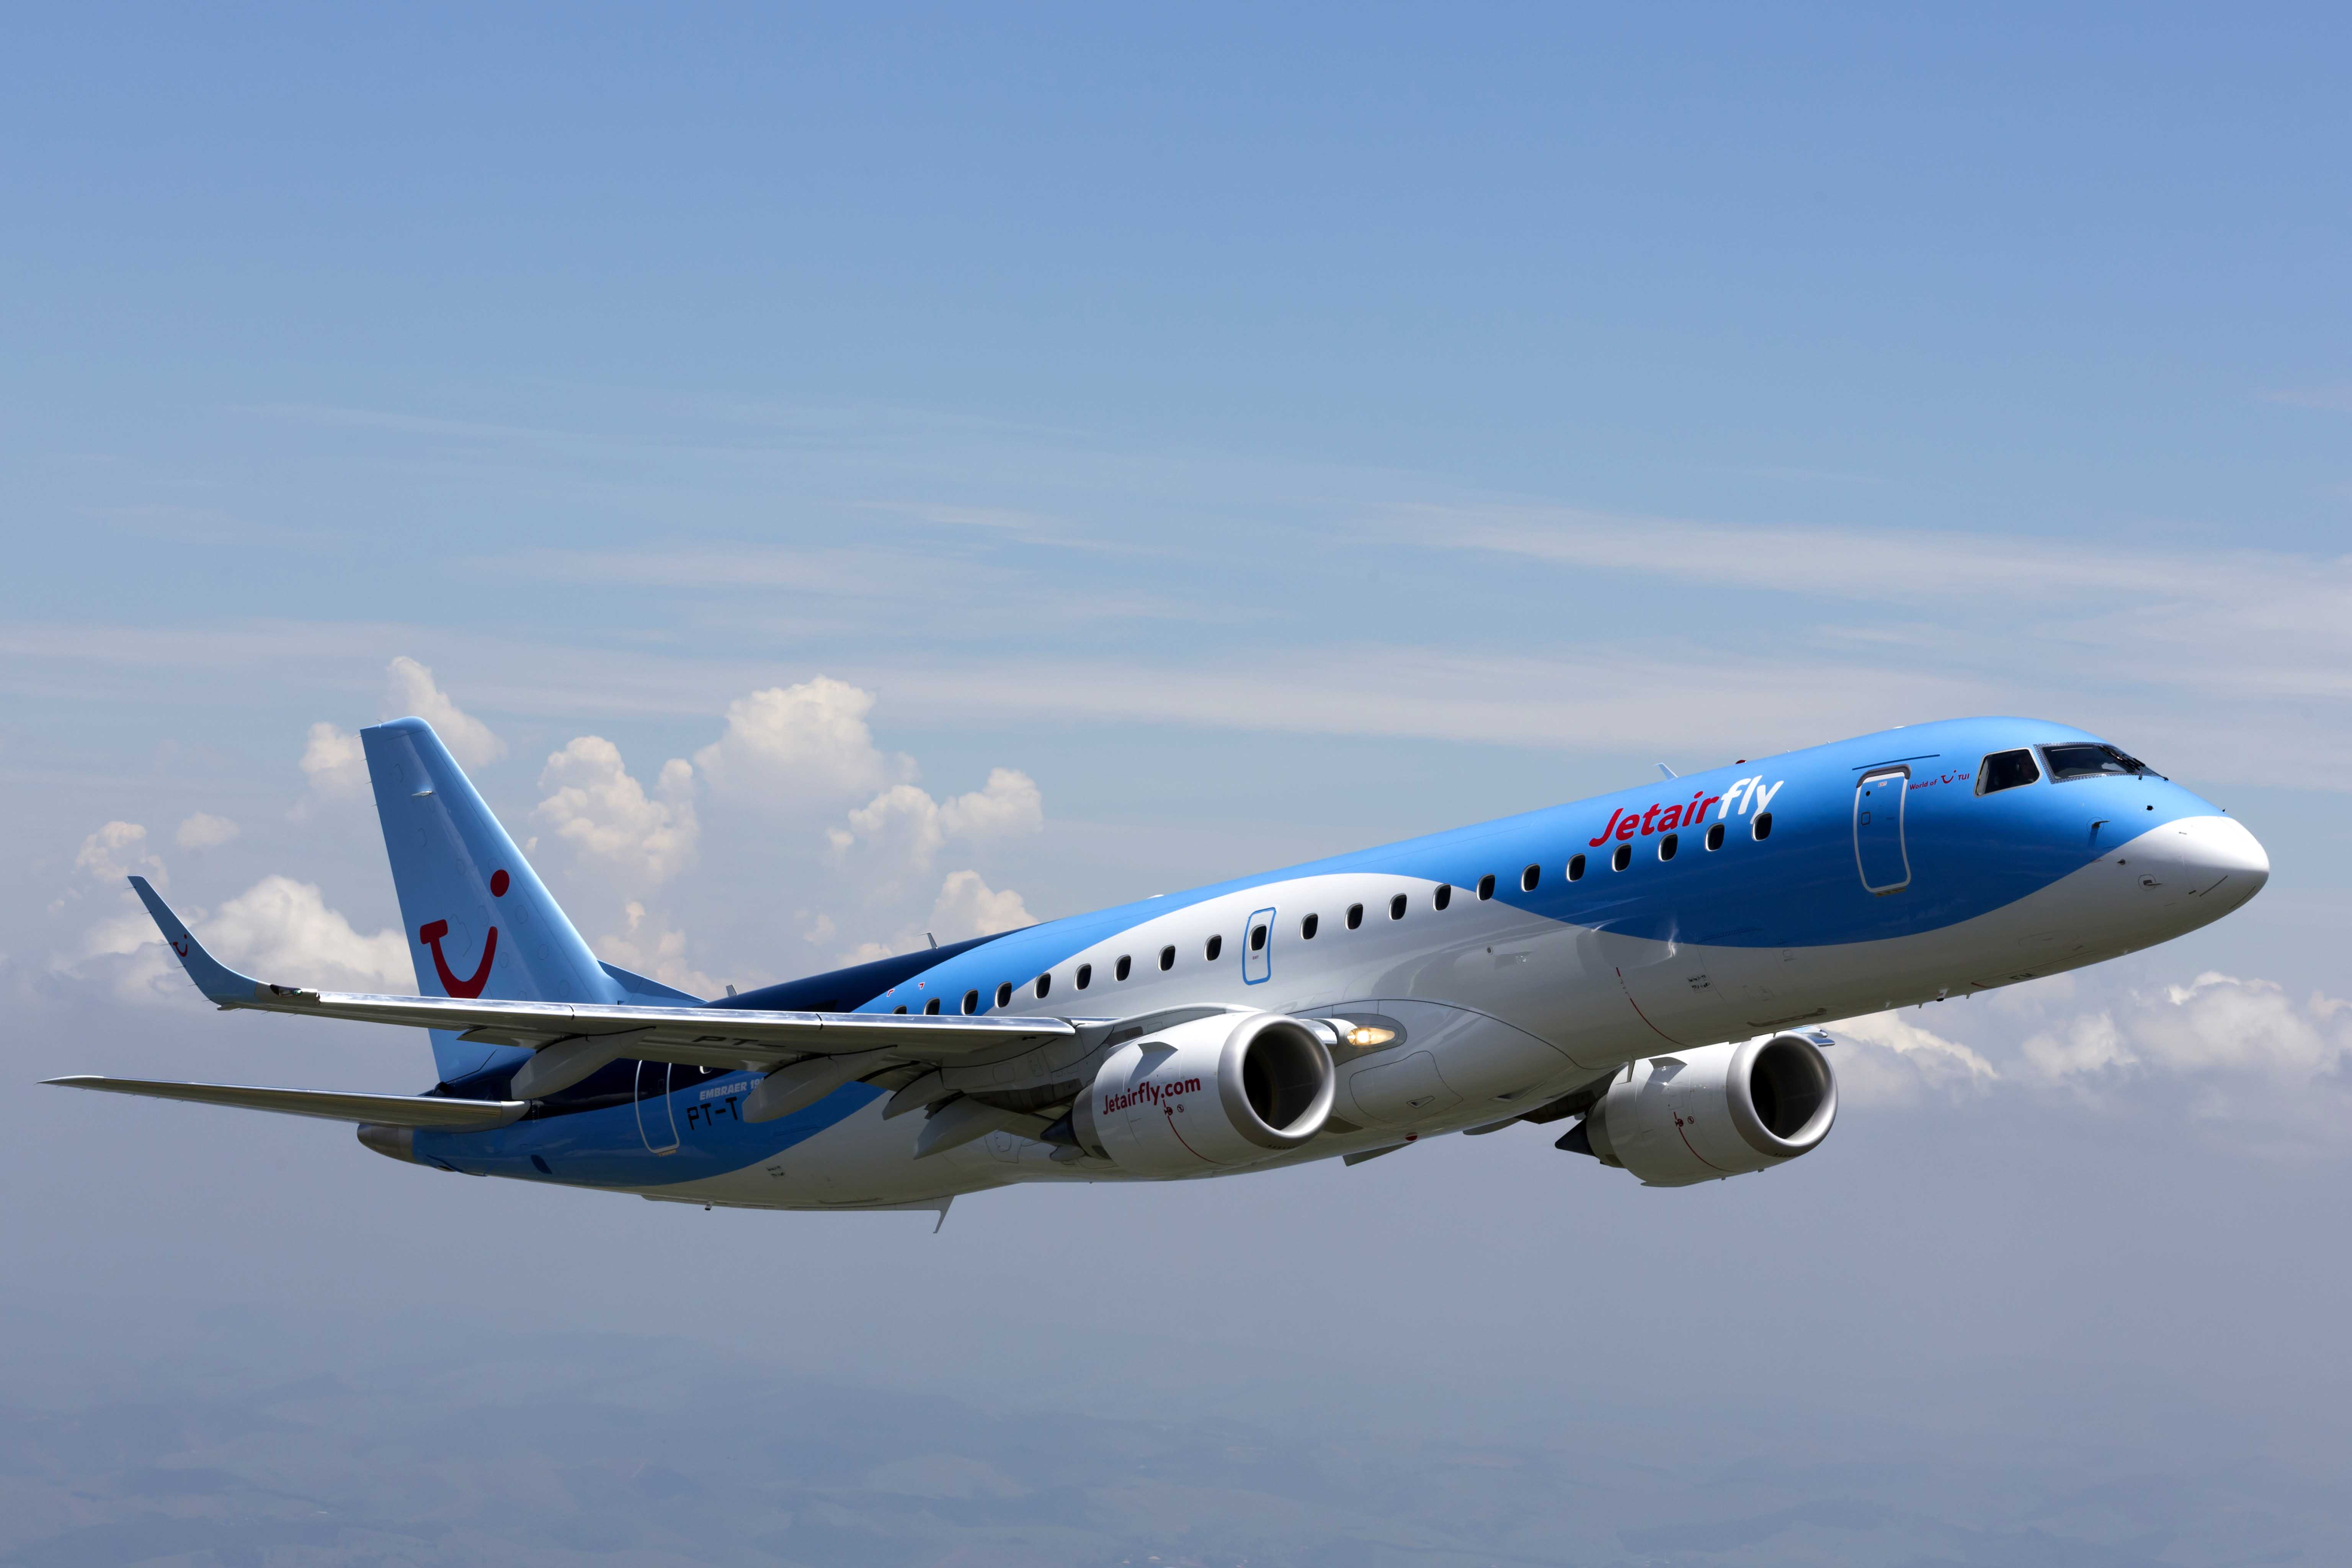 Embraer 190 jetairfly